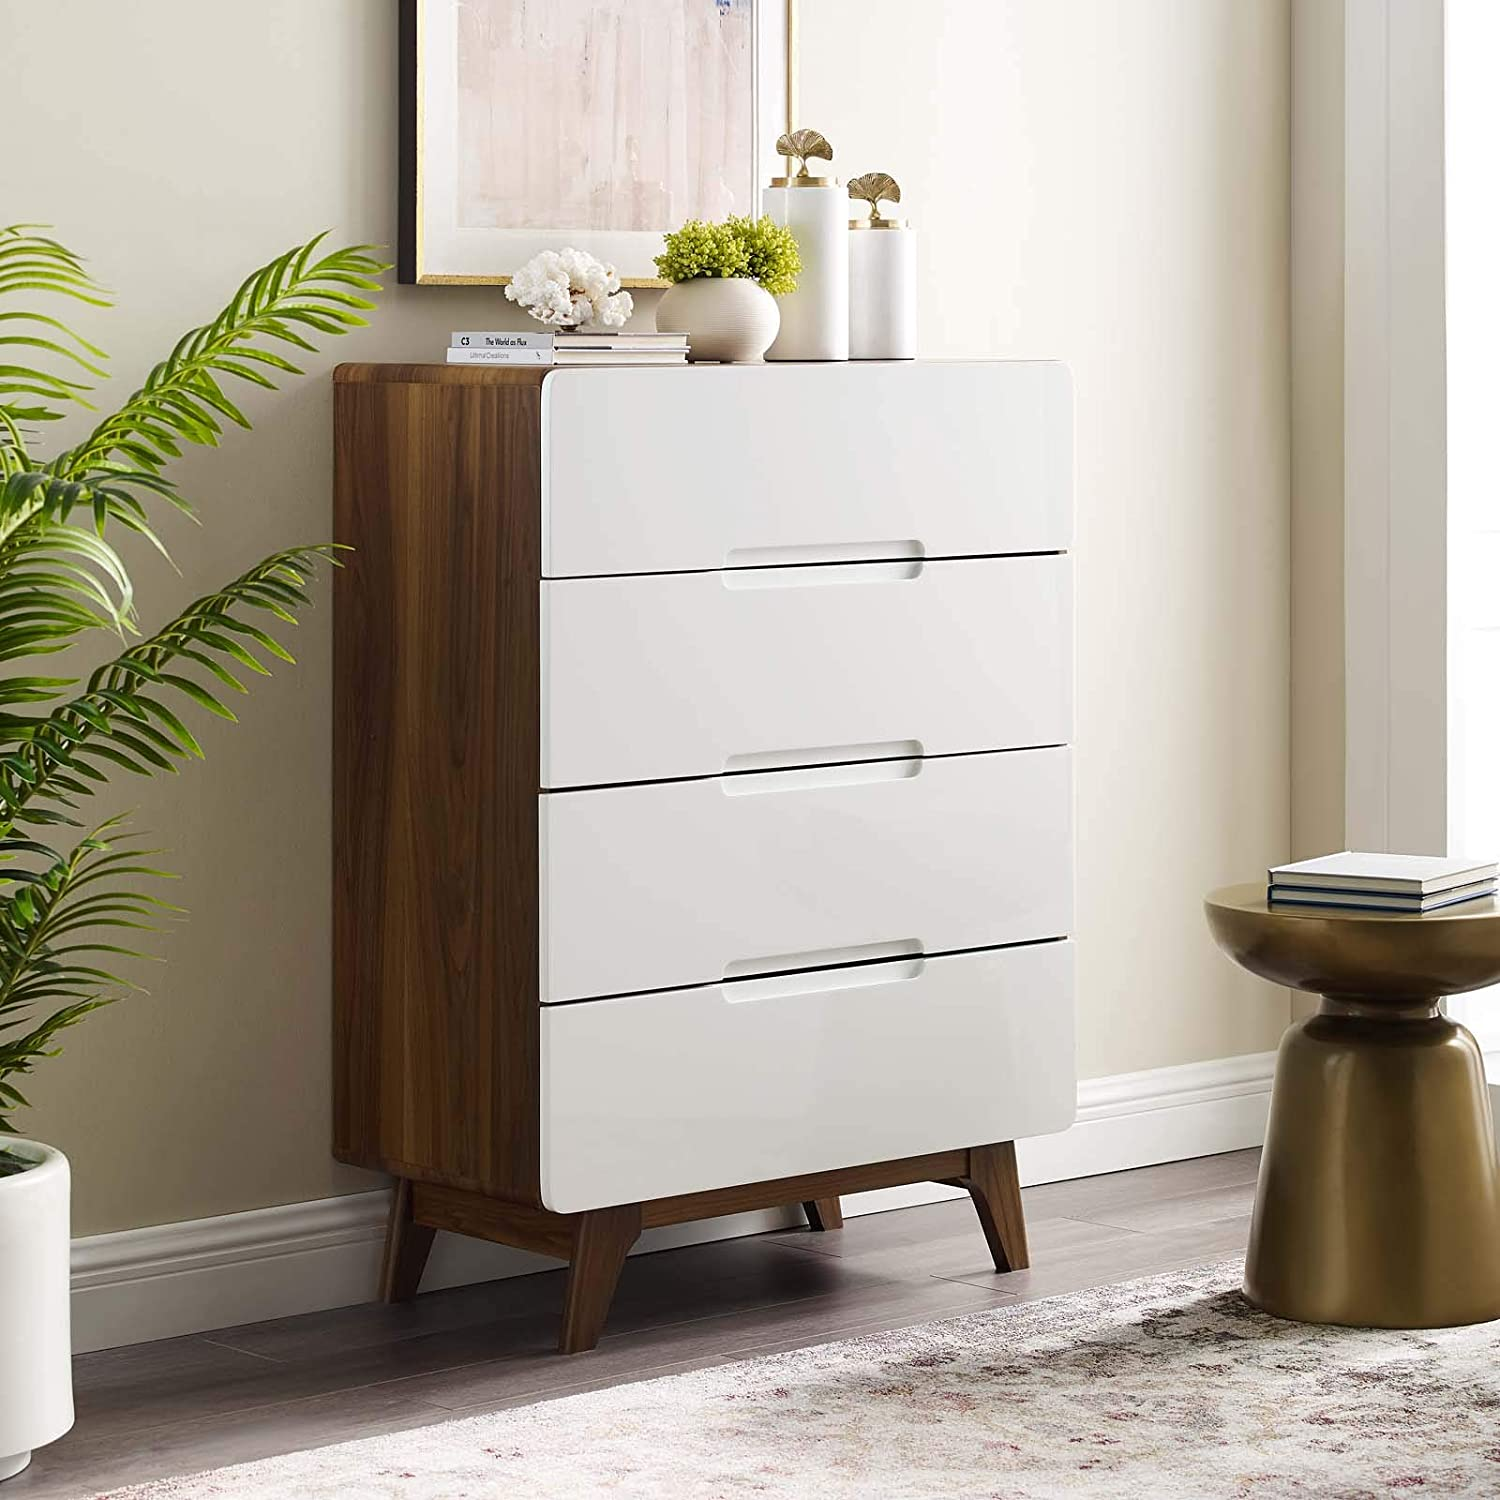 Modway Origin Contemporary Mid-Century Modern 4-Drawer Bedroom Chest in Walnut White